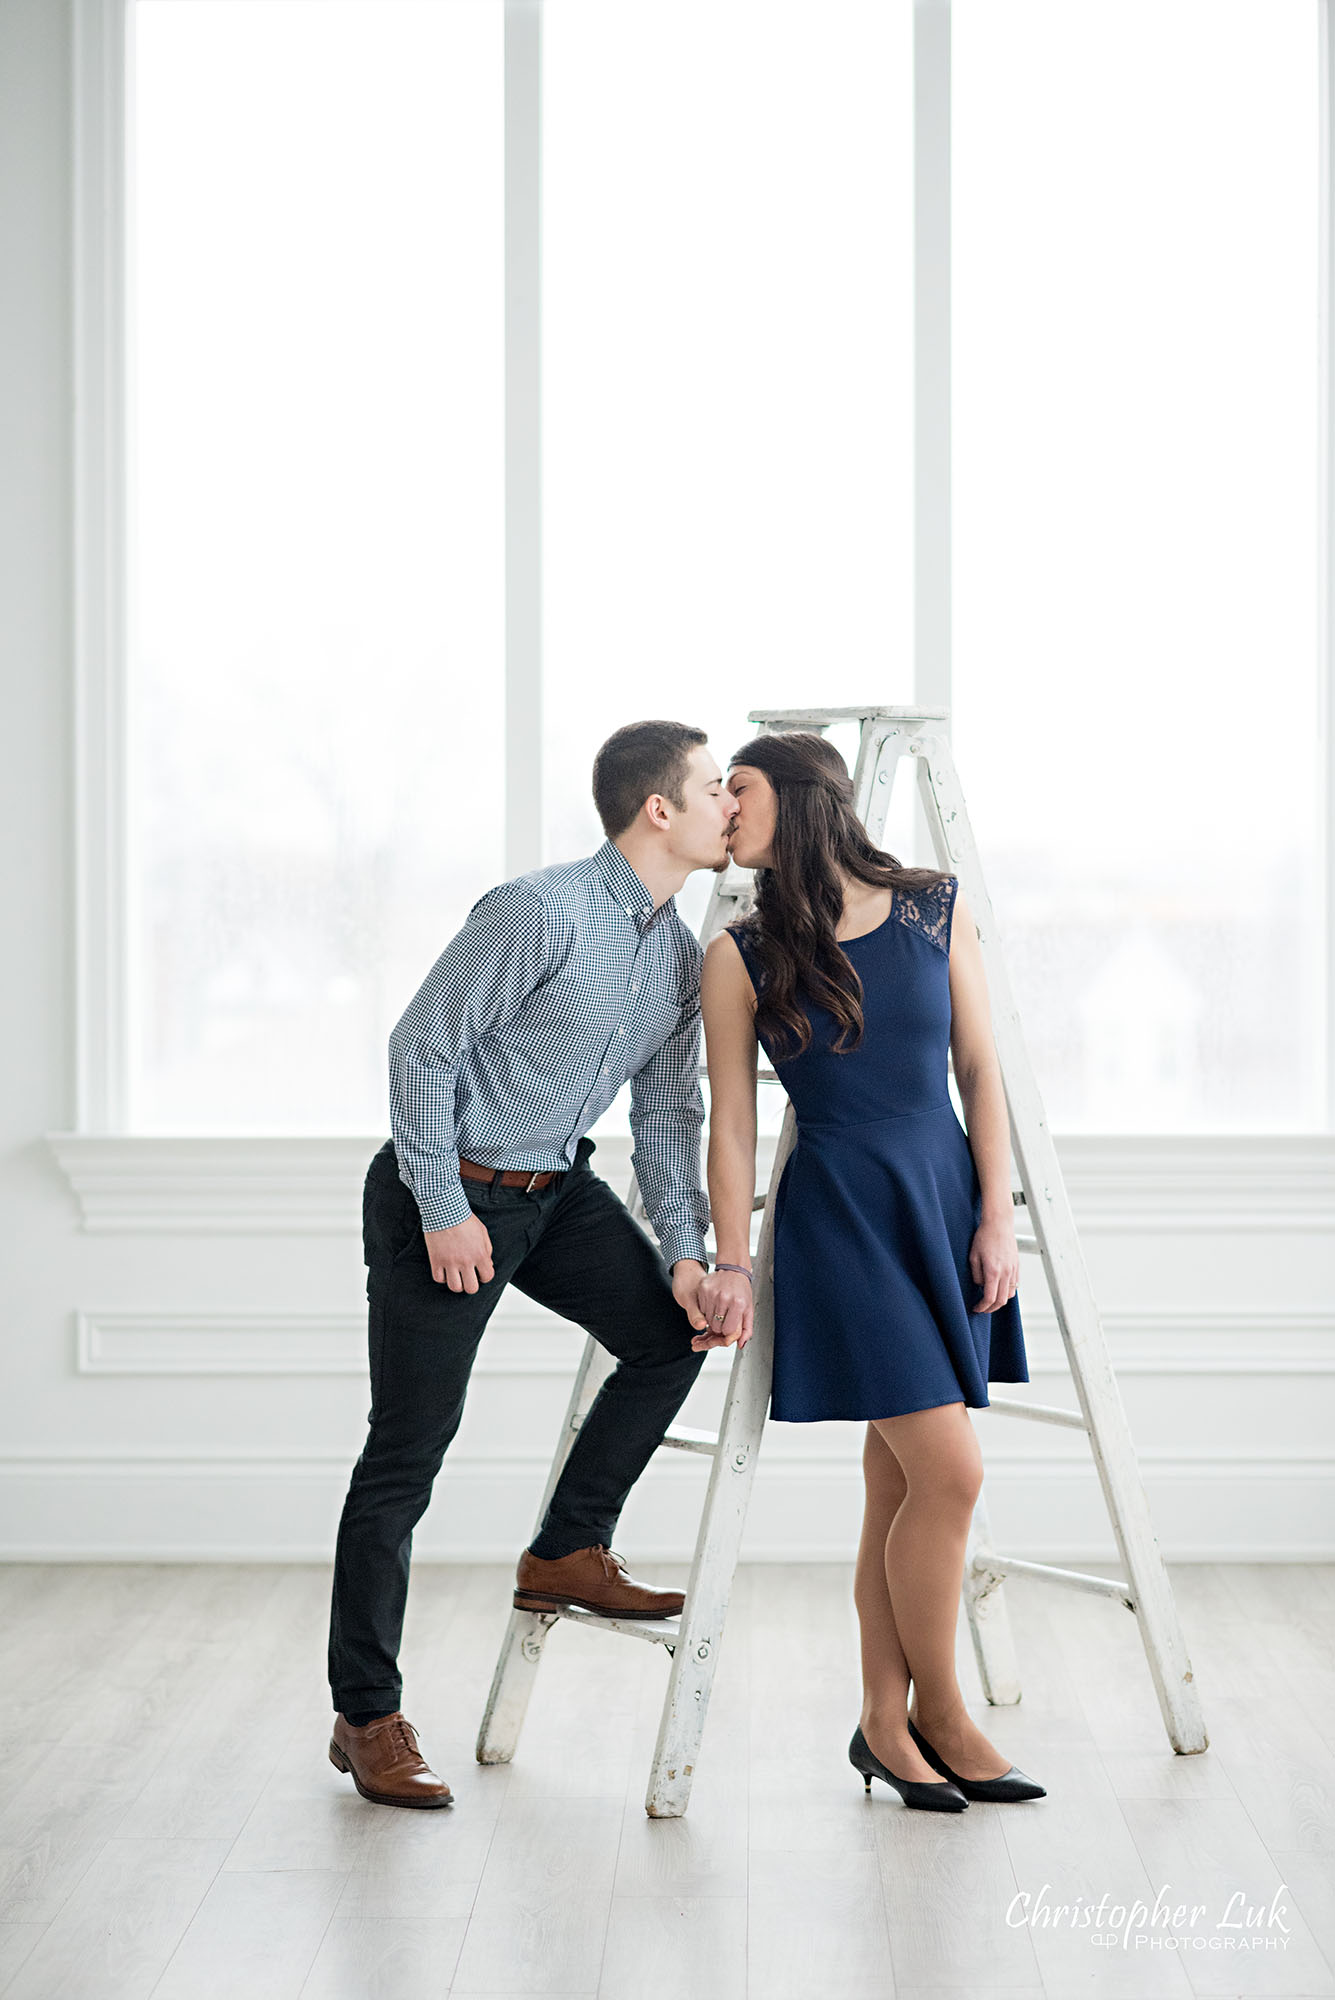 Christopher Luk Toronto Wedding Photographer Mint Room Studios Conservatory Engagement Session Winter Indoor Natural Light Candid Photojournalistic Bride Groom Vintage Rustic Ladder Window Holding Hands Kiss